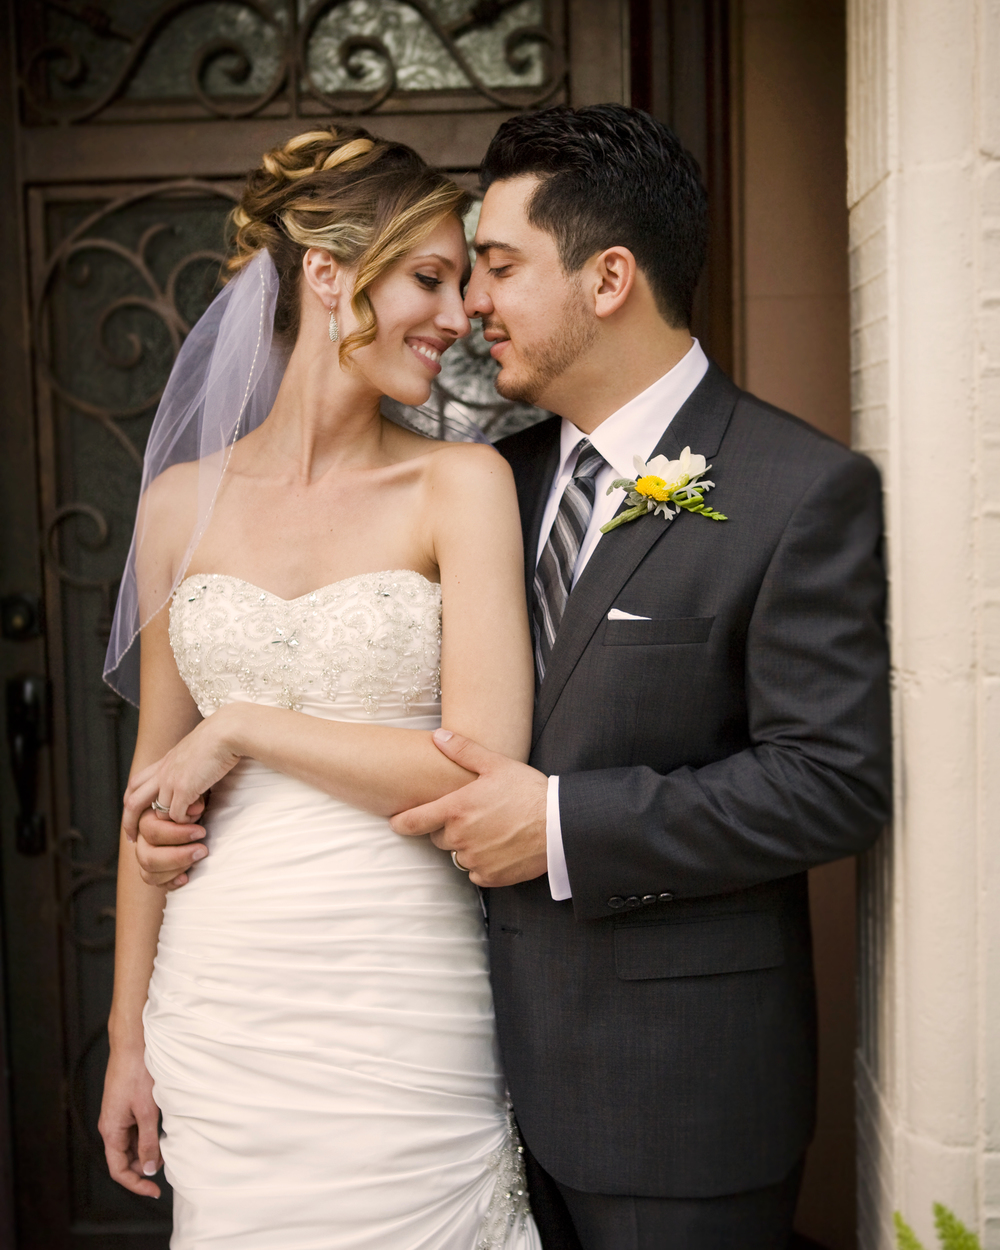 vacaville-wedding-photographer-13.jpg